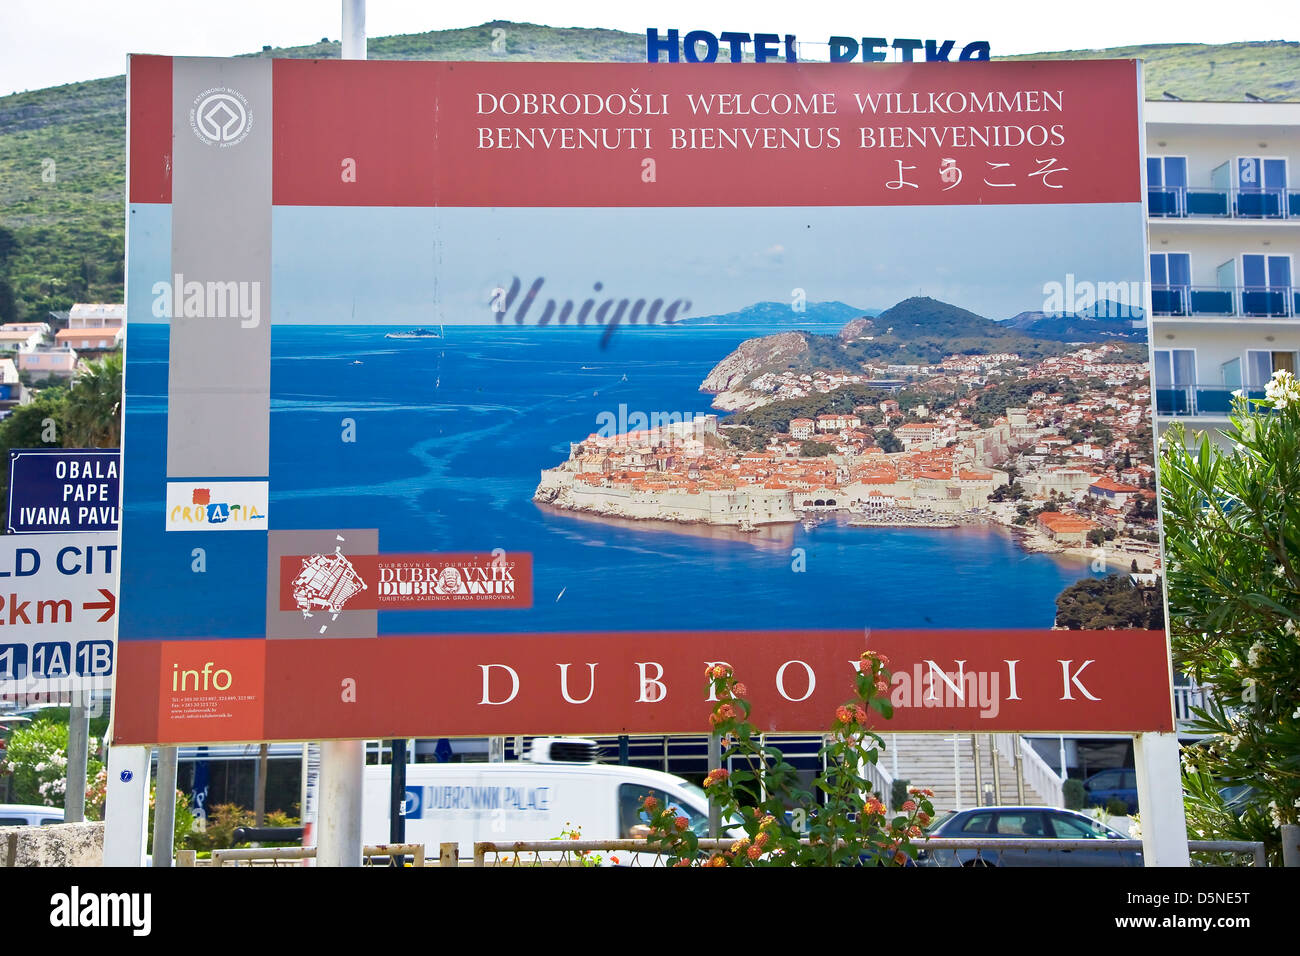 Welcome to Dubrovnk street billboard. - Stock Image